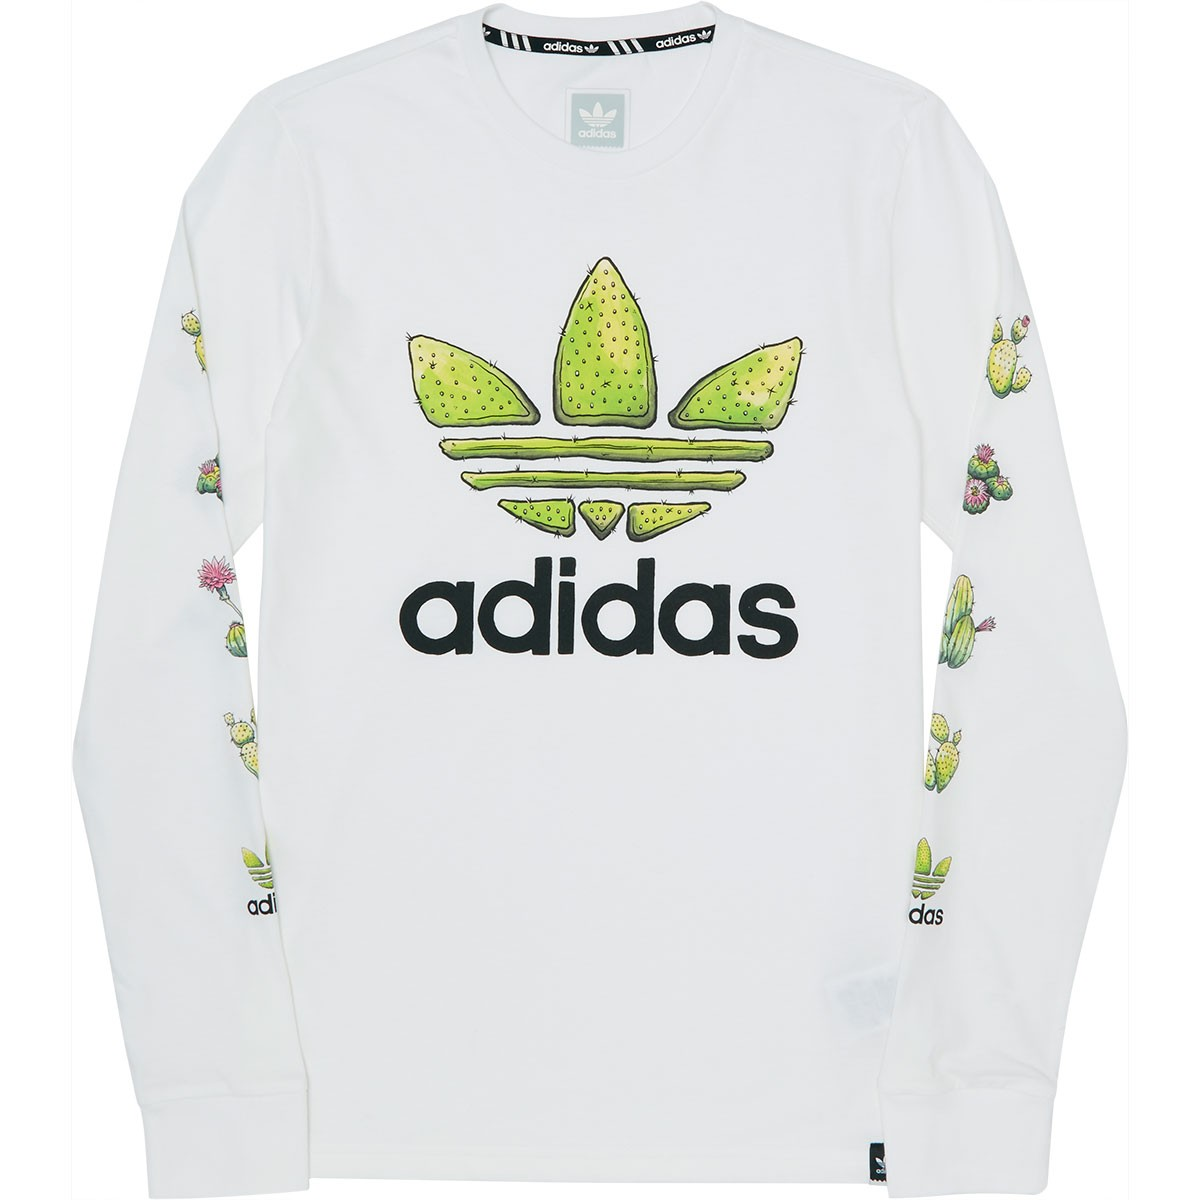 26a6faad0d63 Adidas Cactus Long Sleeve T-Shirt - White